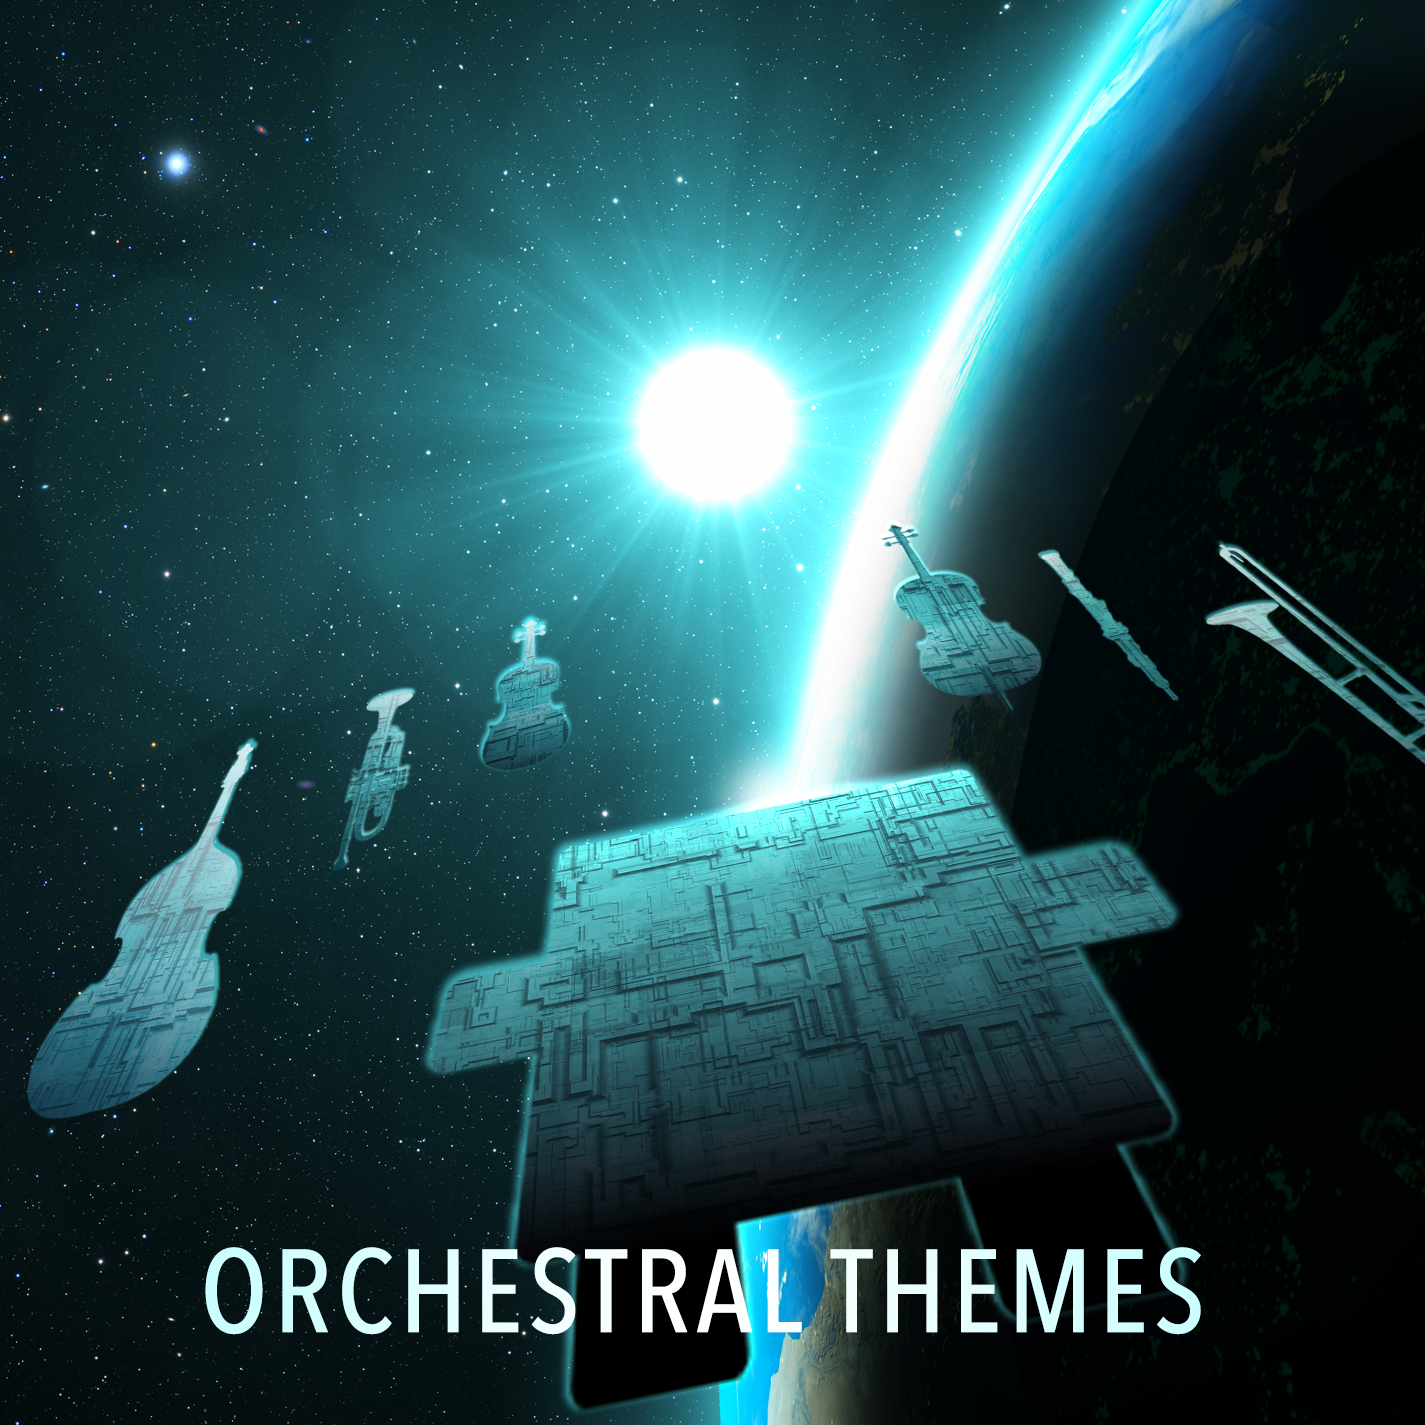 Drama - Orchestral Themes